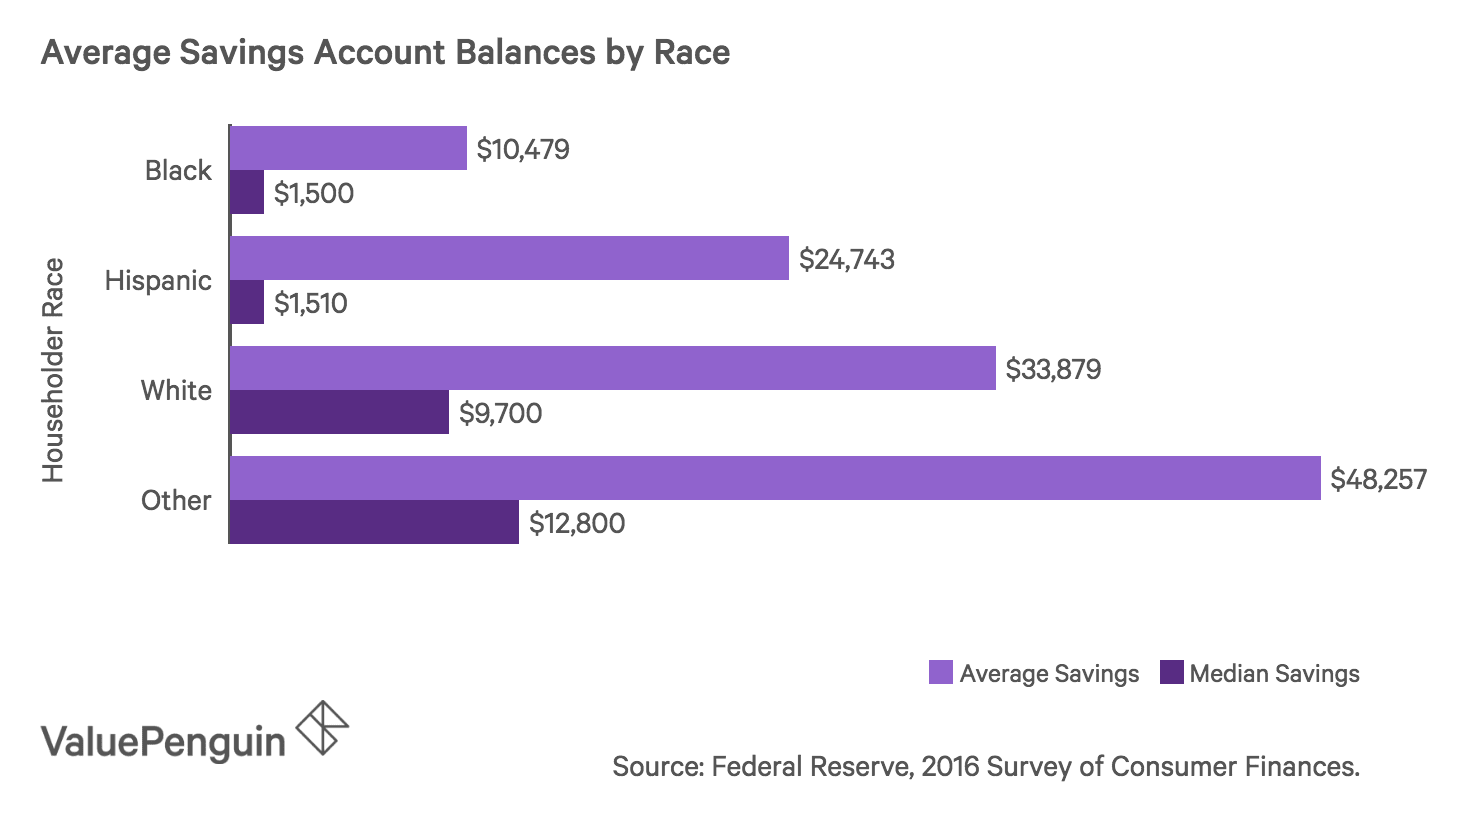 Bar chart showing average and median savings account balances for different ethnic groups